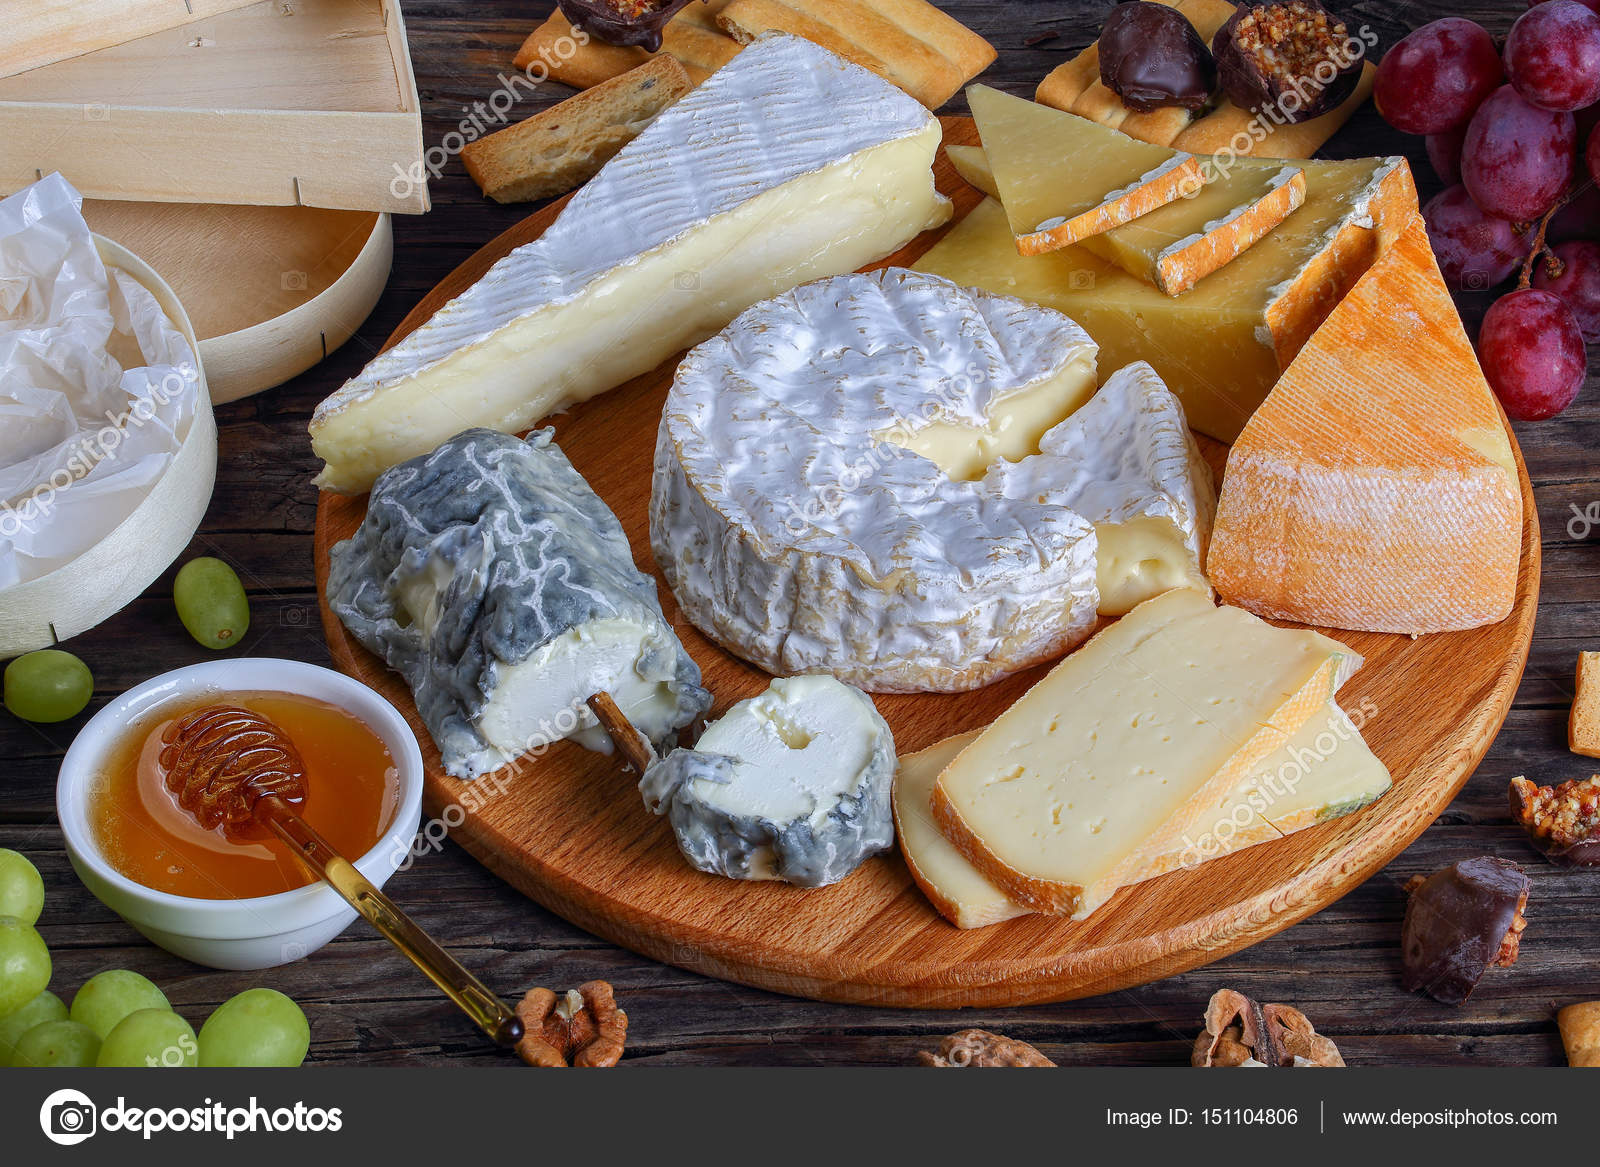 French Cheese plate served with grapes \u2014 Stock Photo & french Cheese plate served with grapes \u2014 Stock Photo © myviewpoint ...